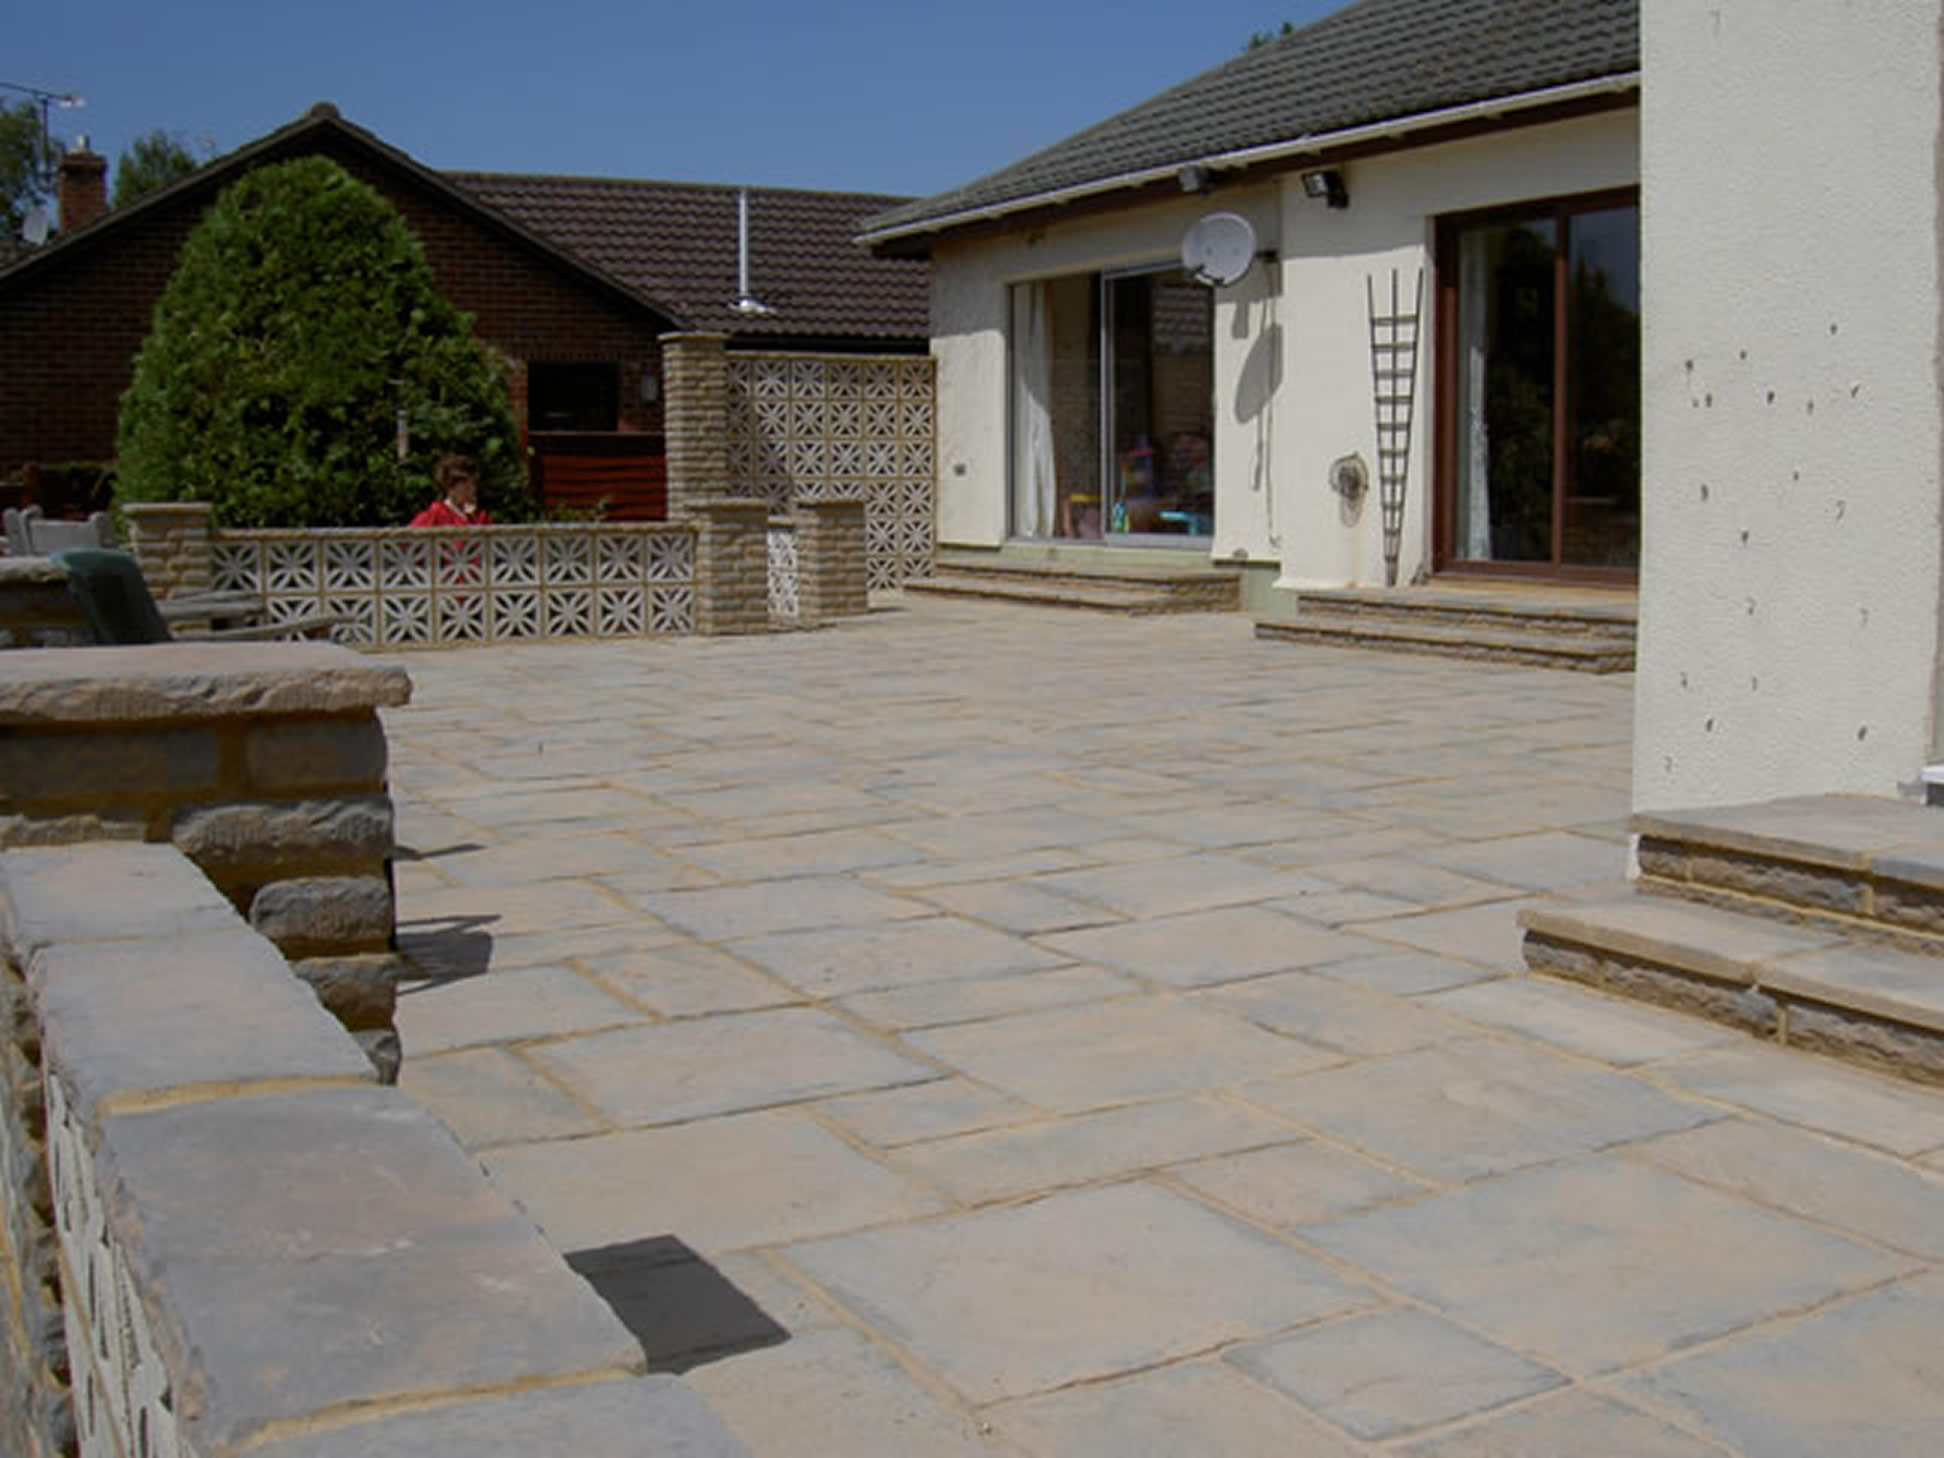 Garden Patio & Paving - P02